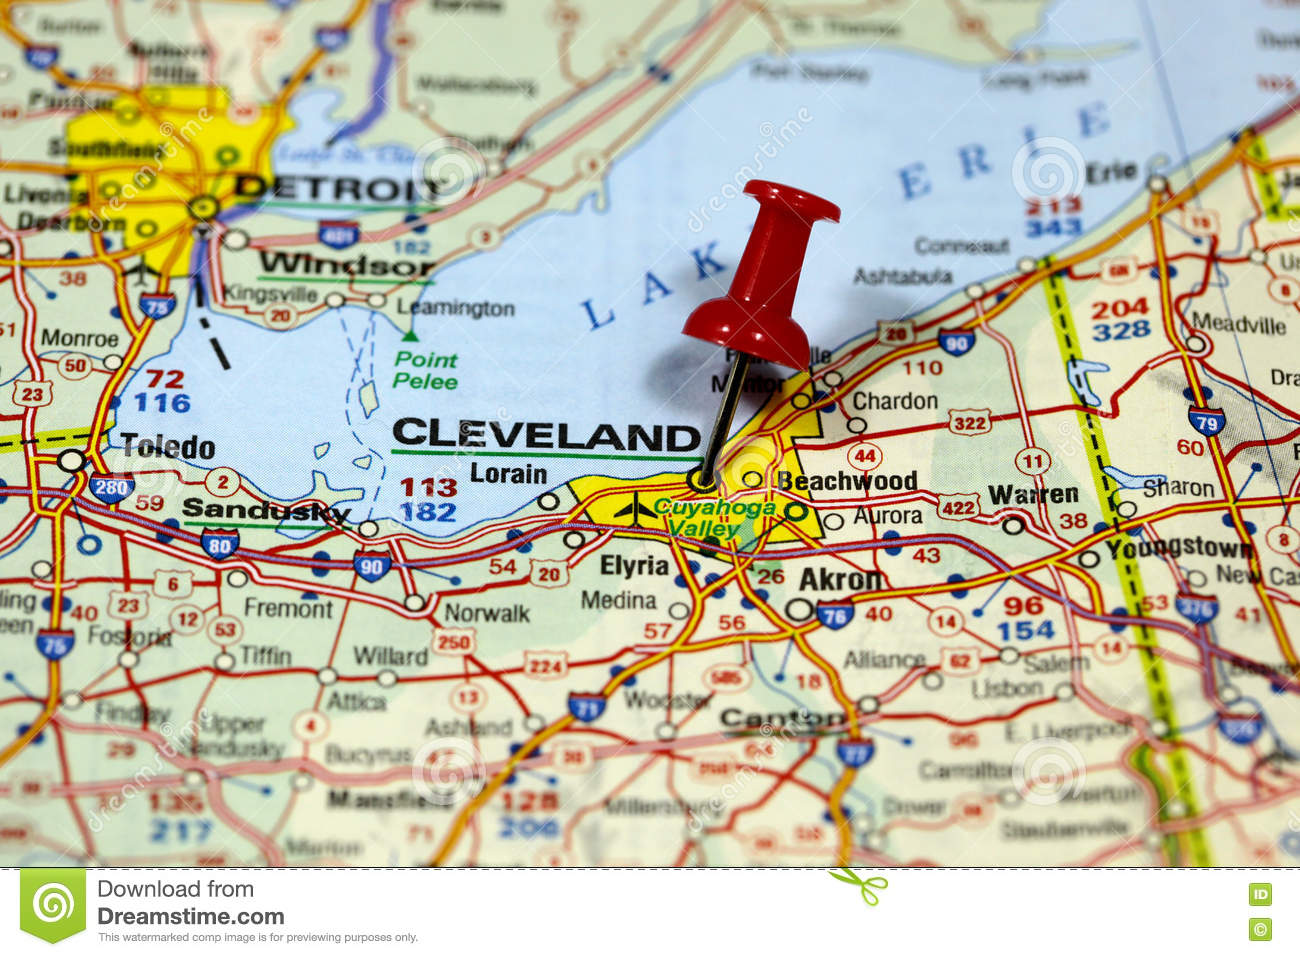 Cleveland in Ohio, USA